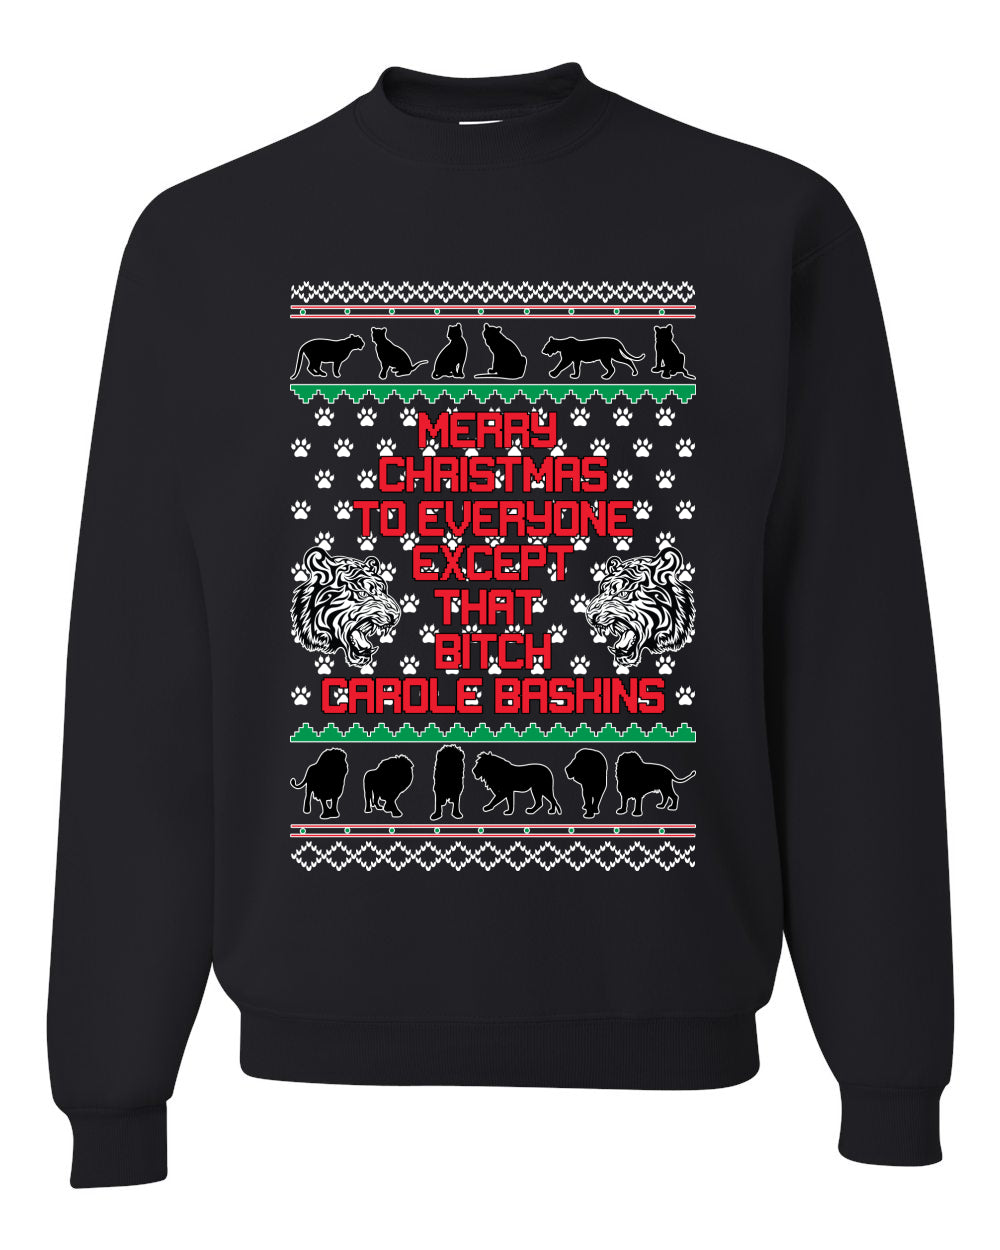 Merry Christmas to Everyone Except that Bitch Carole Baskin Ugly Christmas Sweater Christmas Unisex Crewneck Graphic Sweatshirt